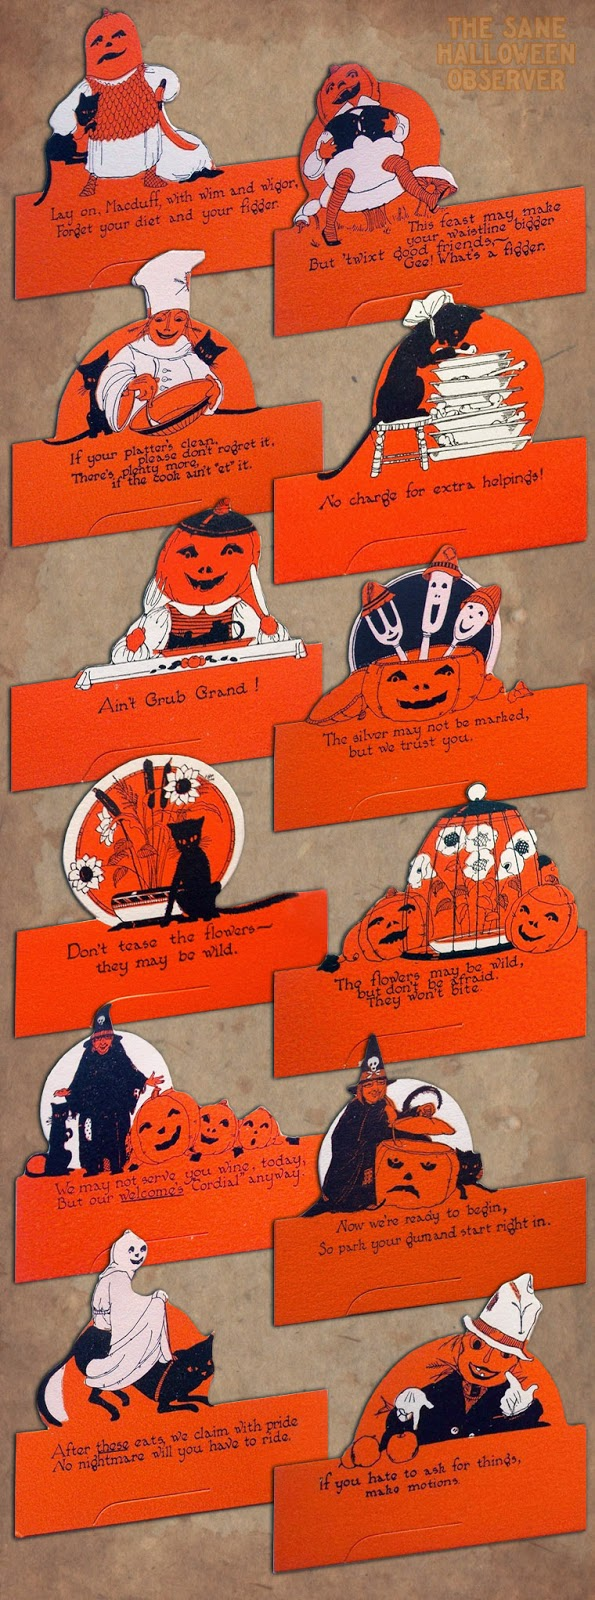 Ghosts, veggie people, Jack O'Lantern pumpkin heads, black cats, witches, and other strange illustrations for Halloween